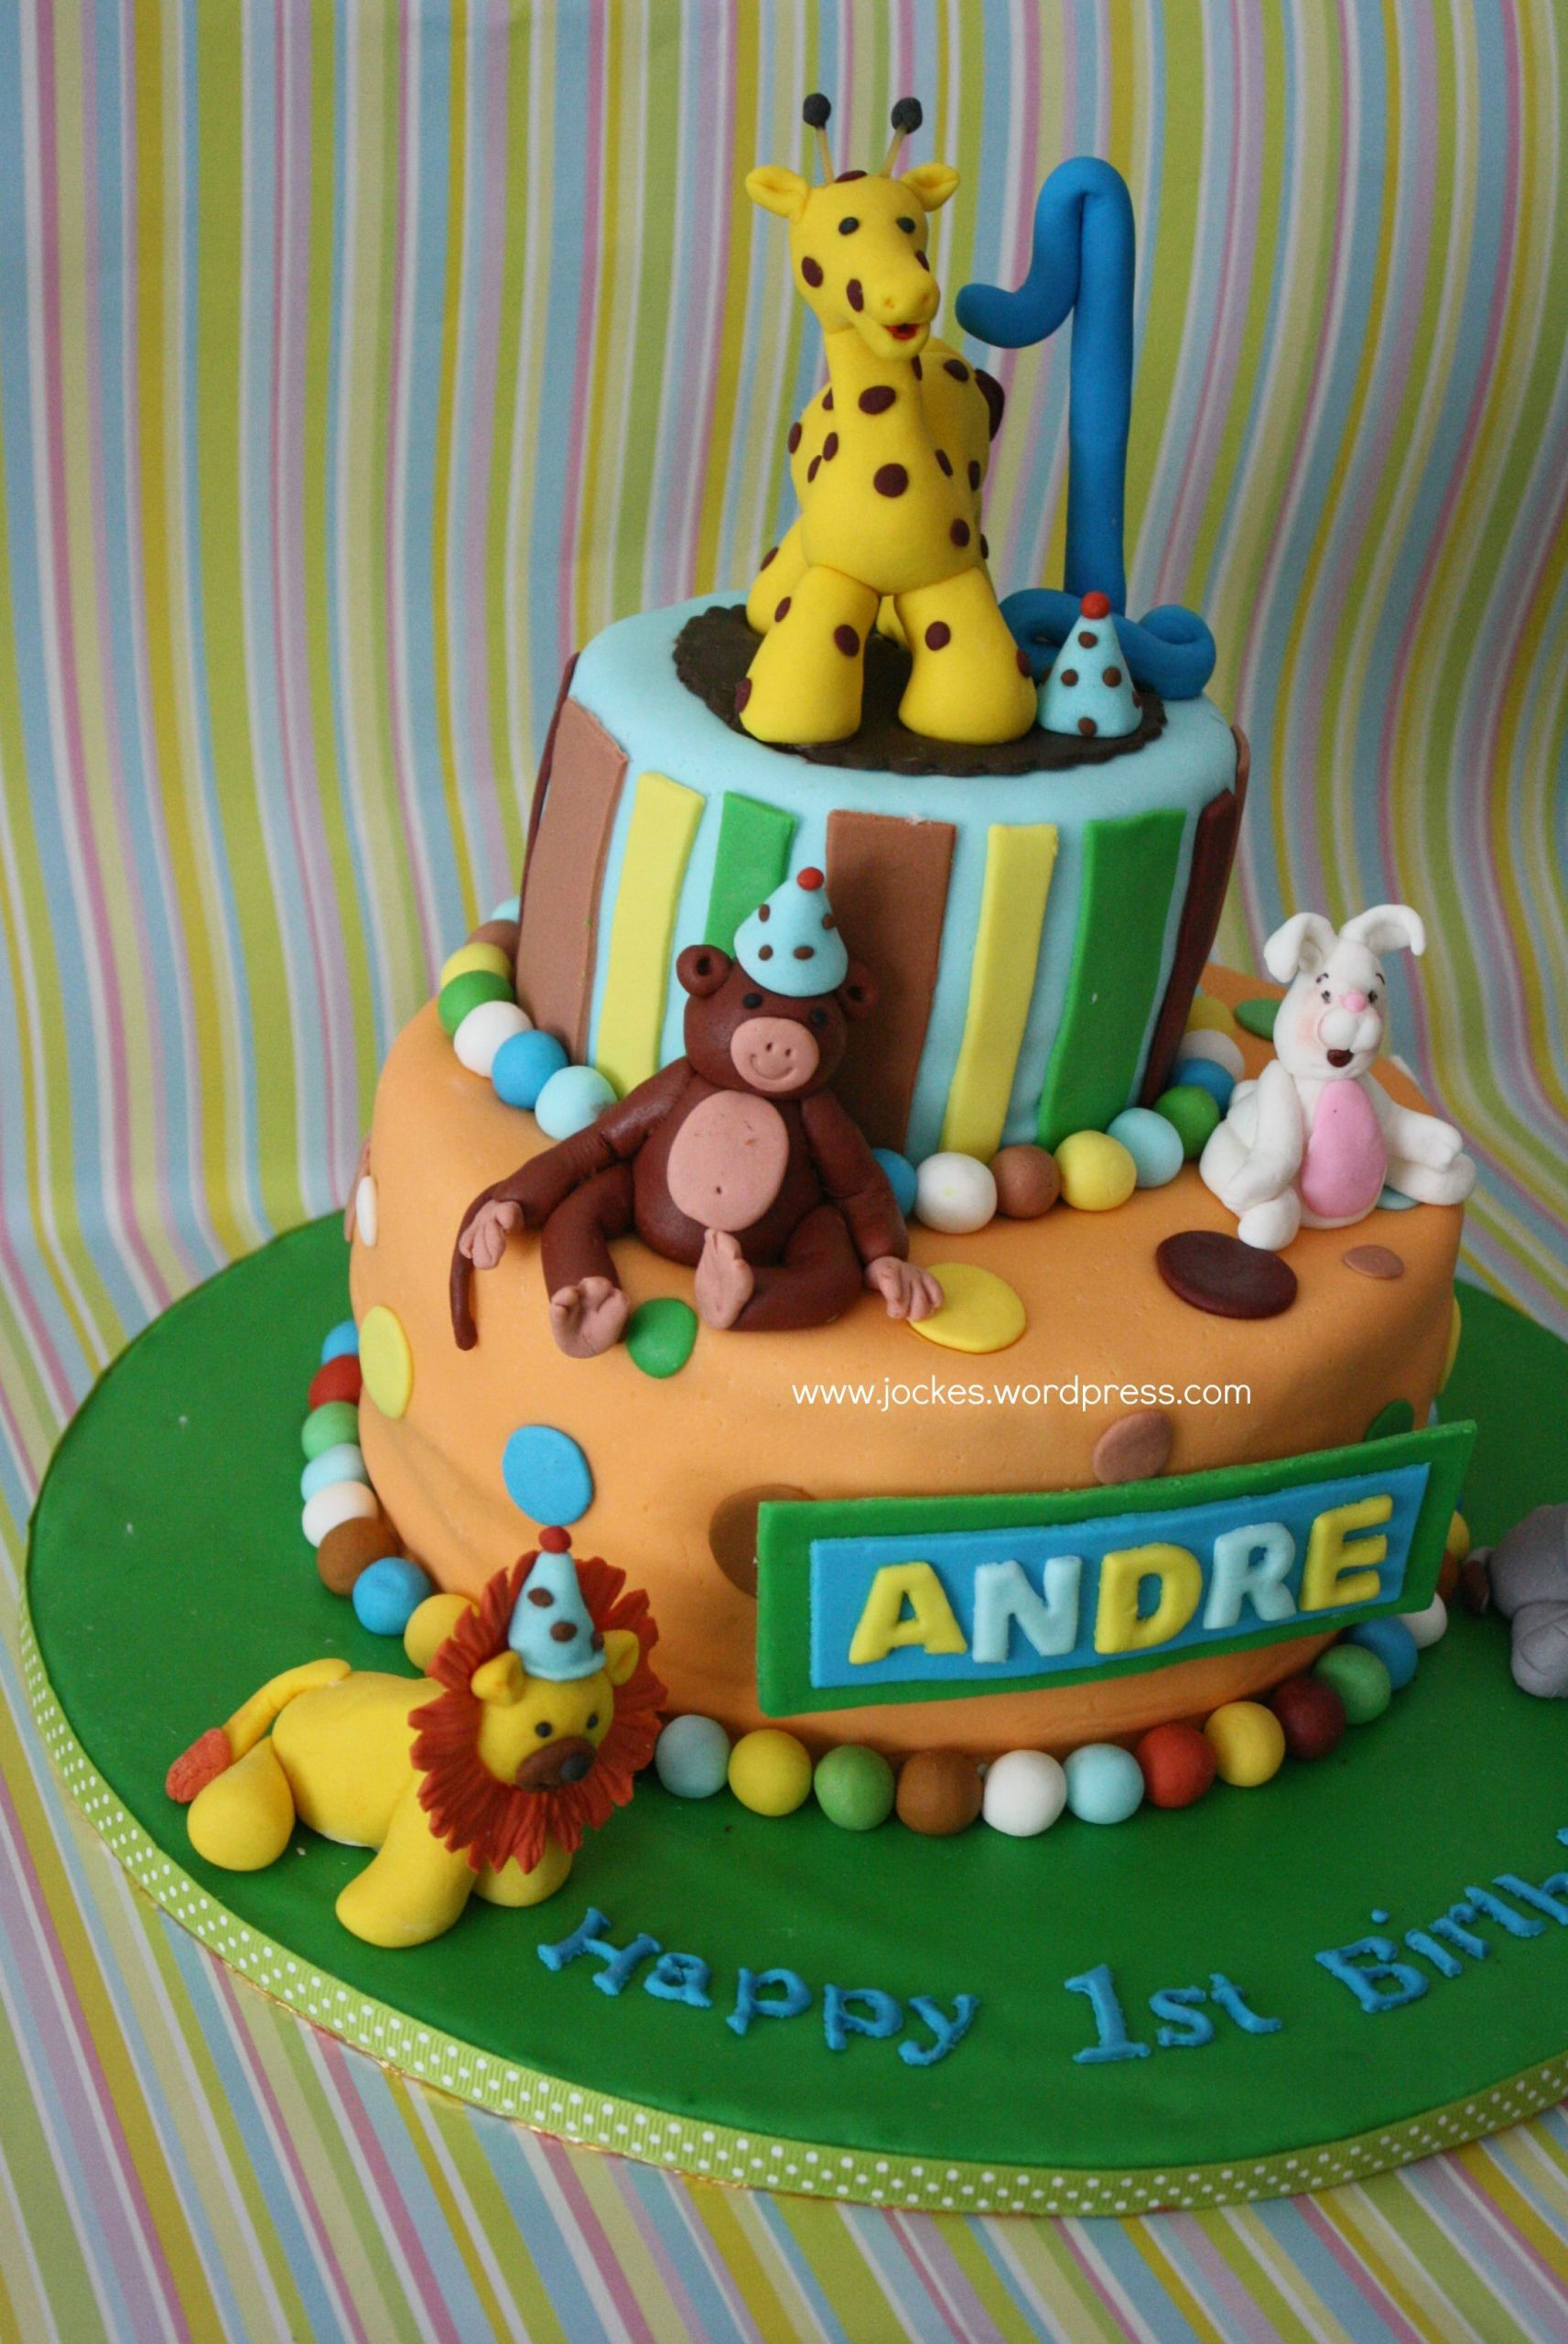 Birthday Cake For 1 Year Old  birthday cakes for 1 year olds boy Google Search With